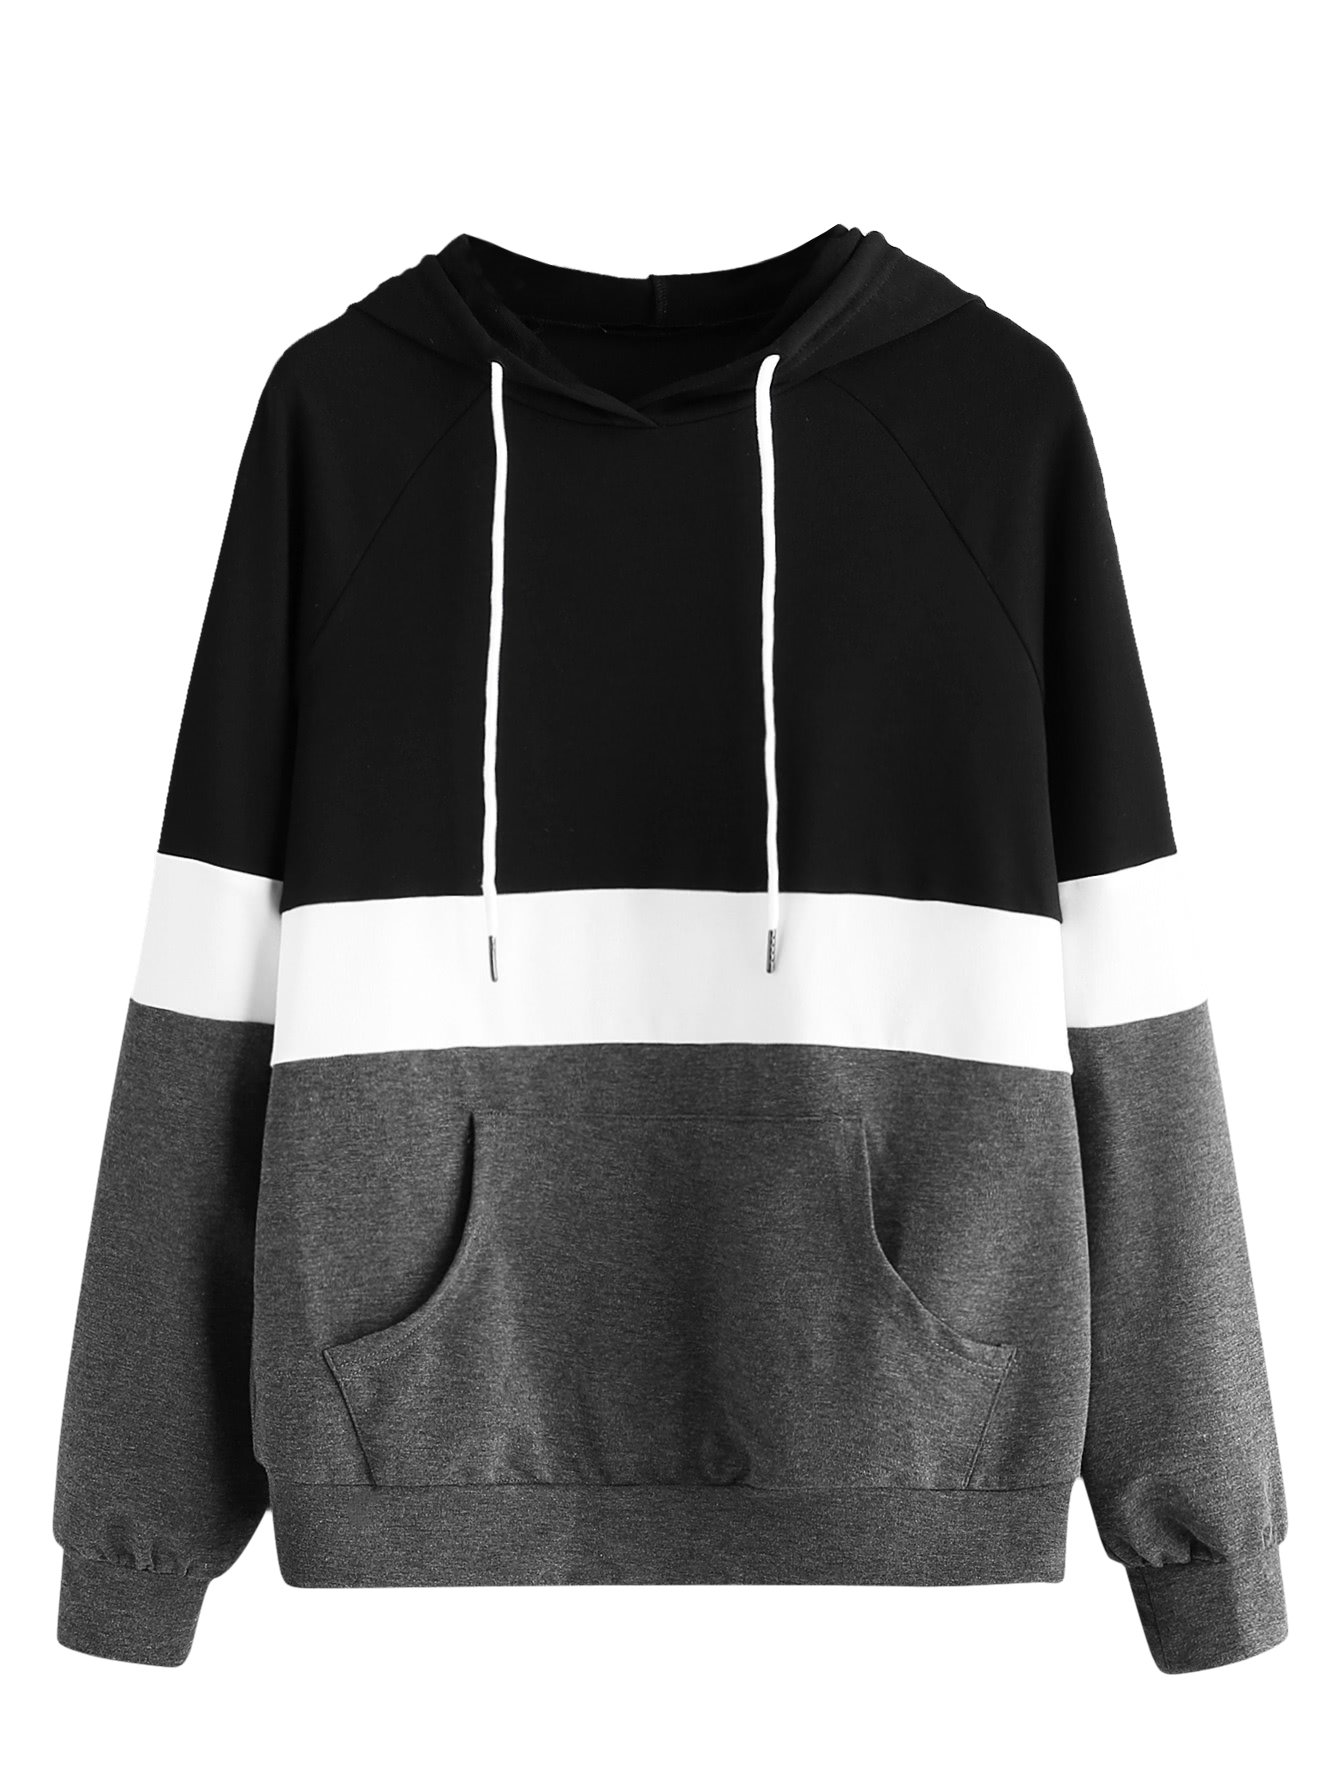 DIDK Women's Hoodies Long Sleeve Splice 3 Color Hooded Sweatshirt Black Grey XL